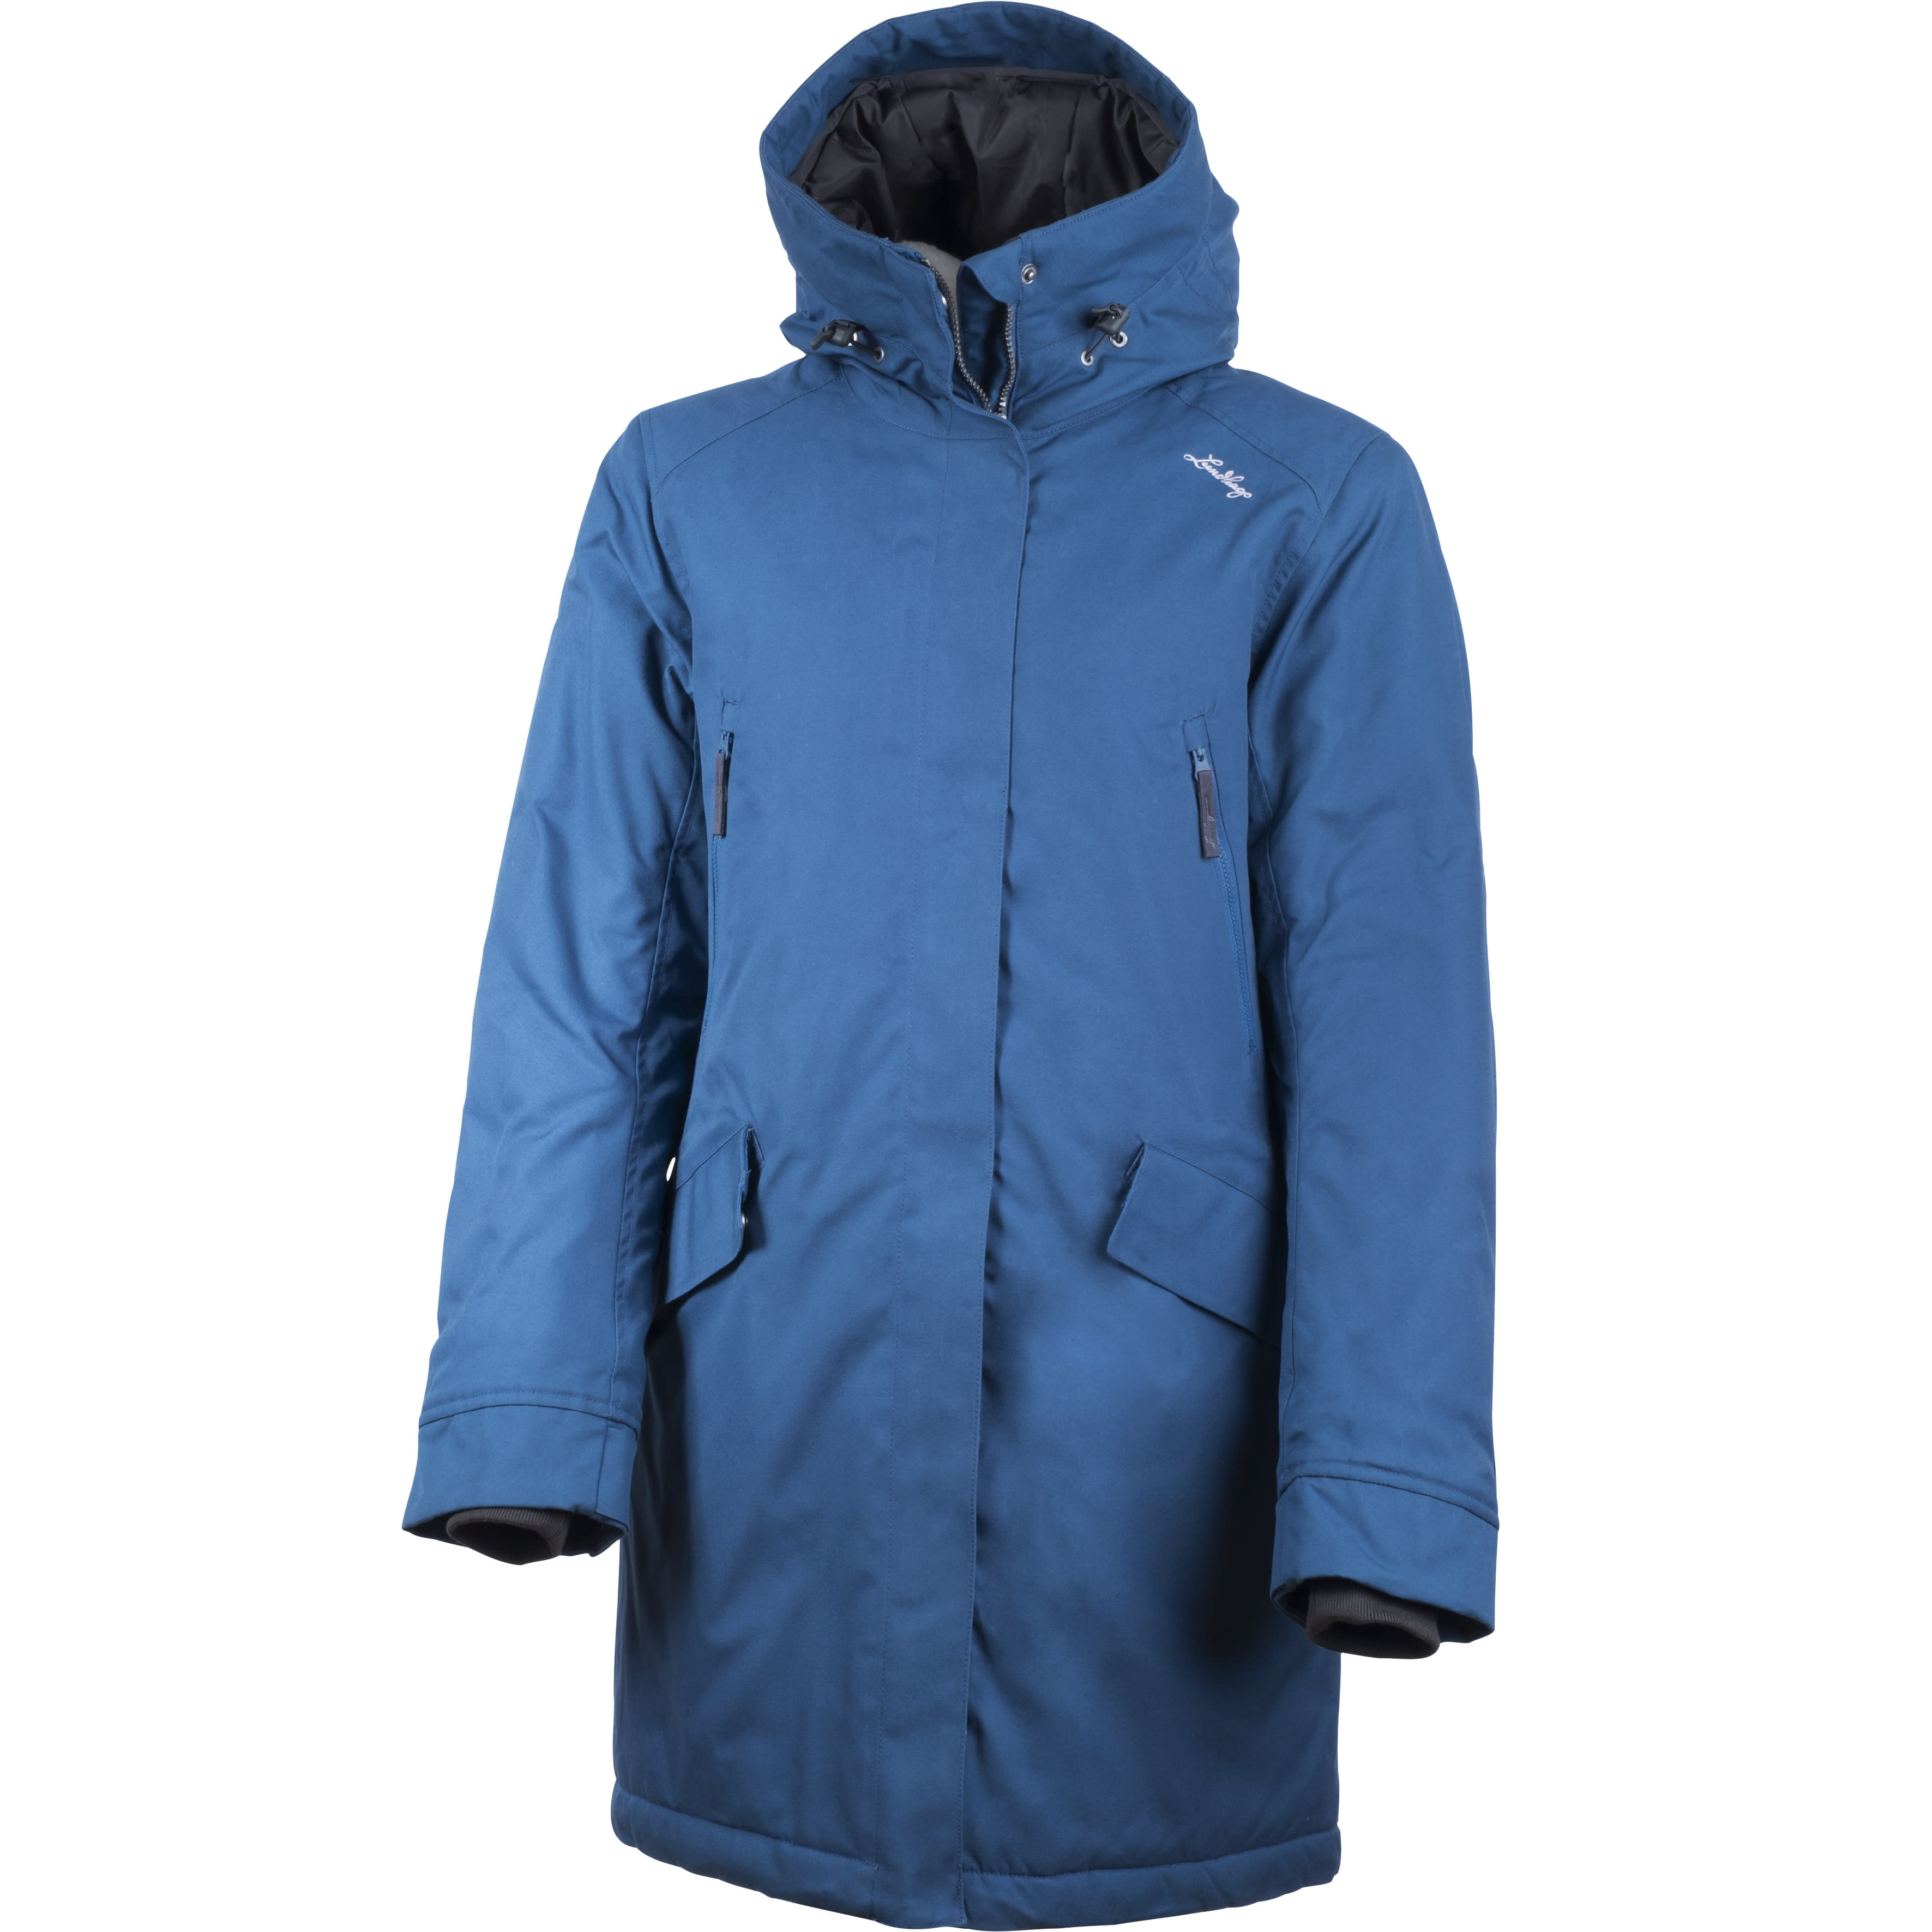 Buy Lundhags Bjan Ws Parka from Outnorth f7414fee53